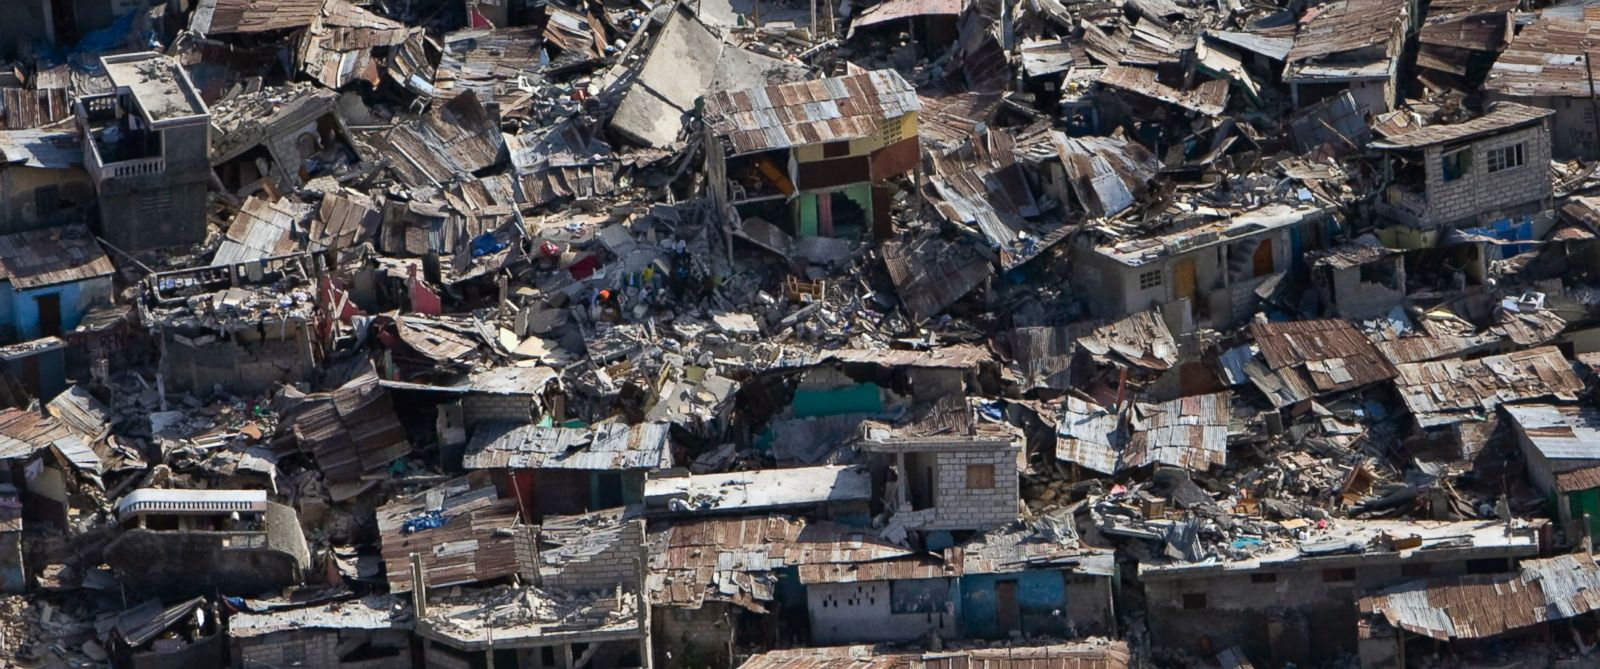 PHOTO: Houses in a poor neighborhood sit destroyed after an earthquake in this Jan. 13, 2010 file photo in Port-au-Prince, Haiti.